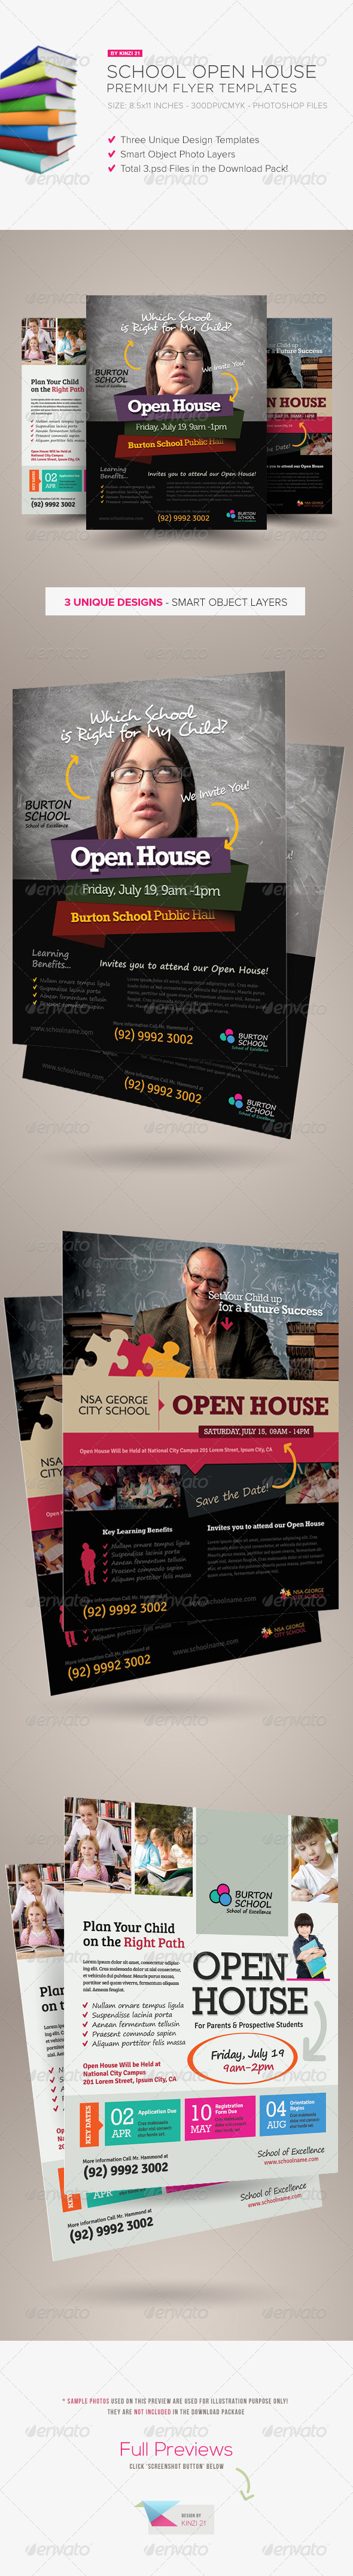 School Open House Flyers - Corporate Flyers